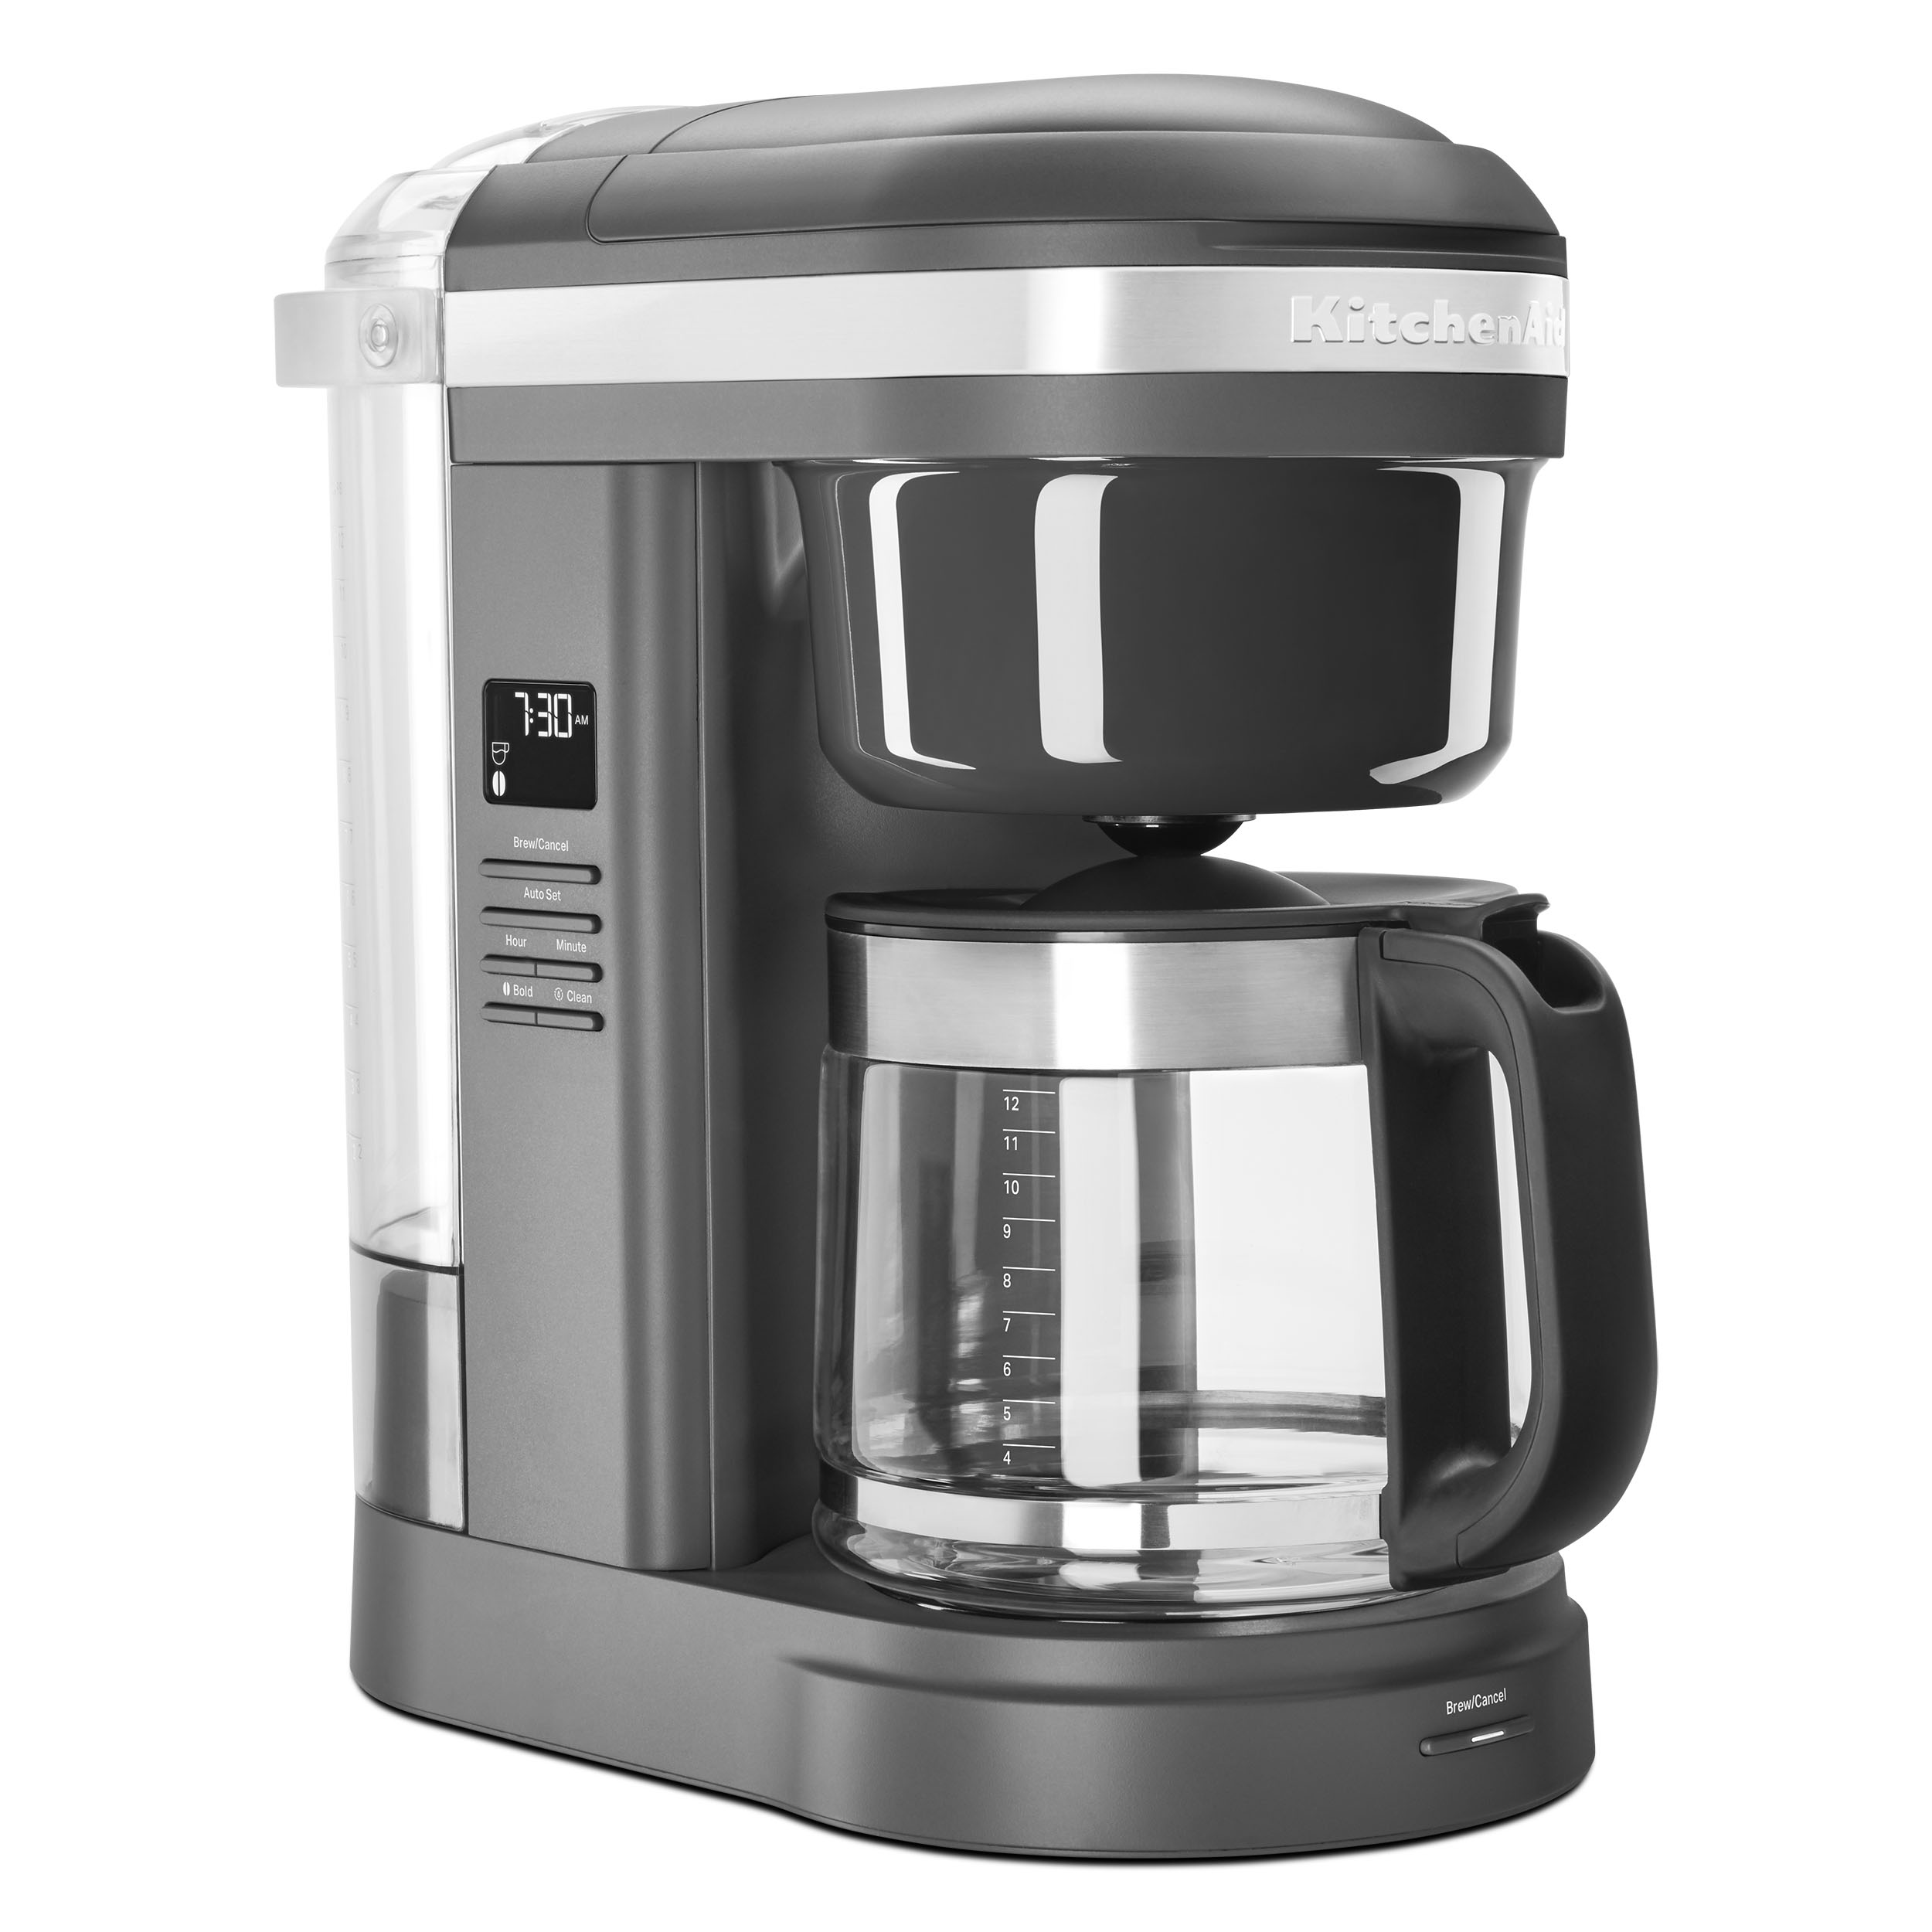 KitchenAid? 12 Cup Drip Coffee Maker With Spiral Showerhead   Matte  Charcoal Grey   Walmart.com